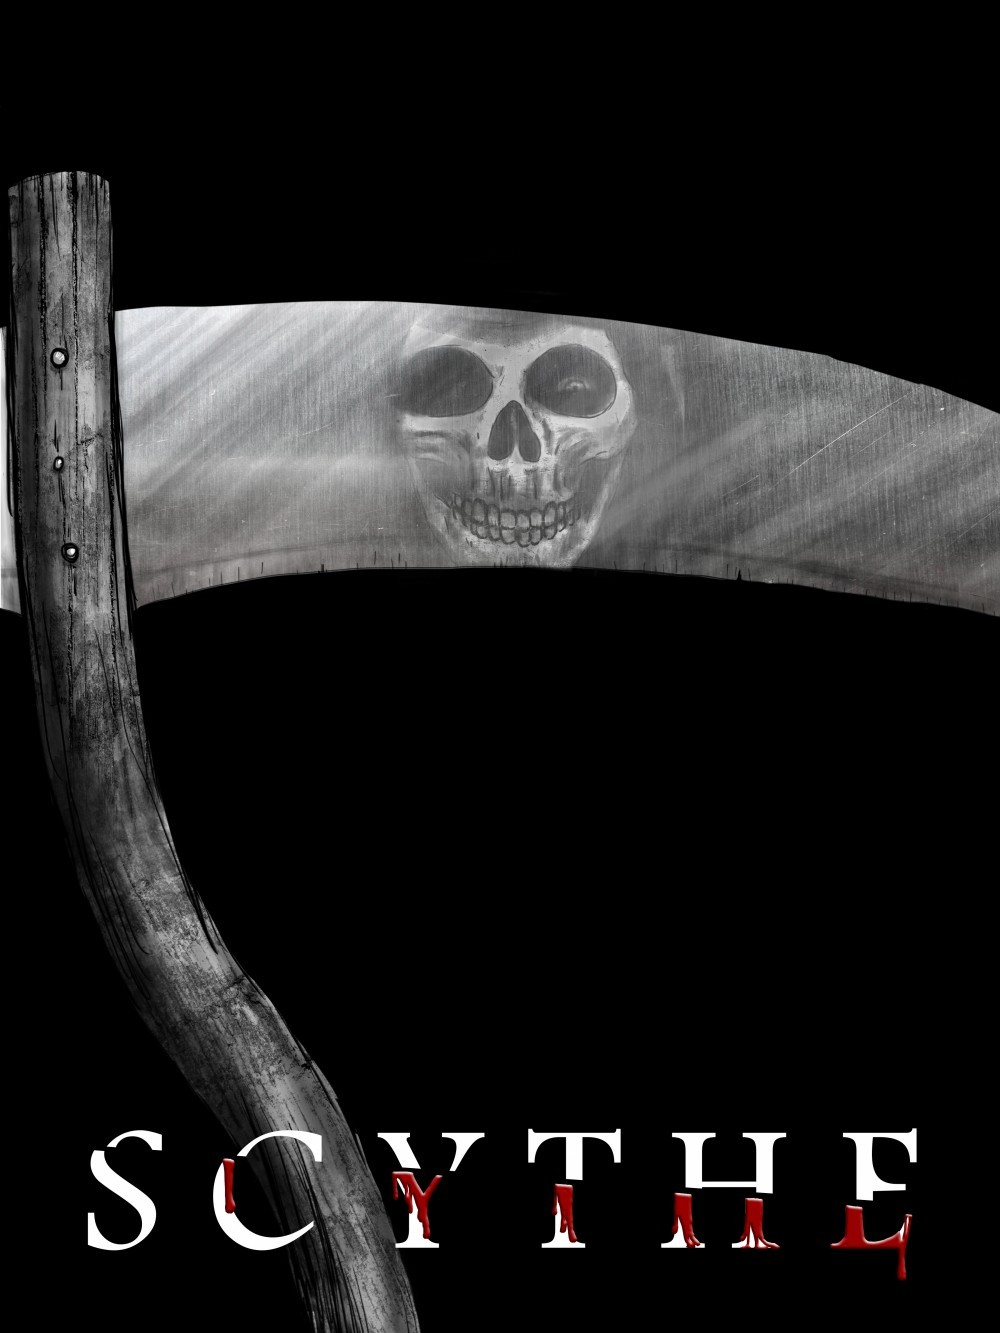 Scythe: An upcoming Slasher/Thriller - The Blood Shed